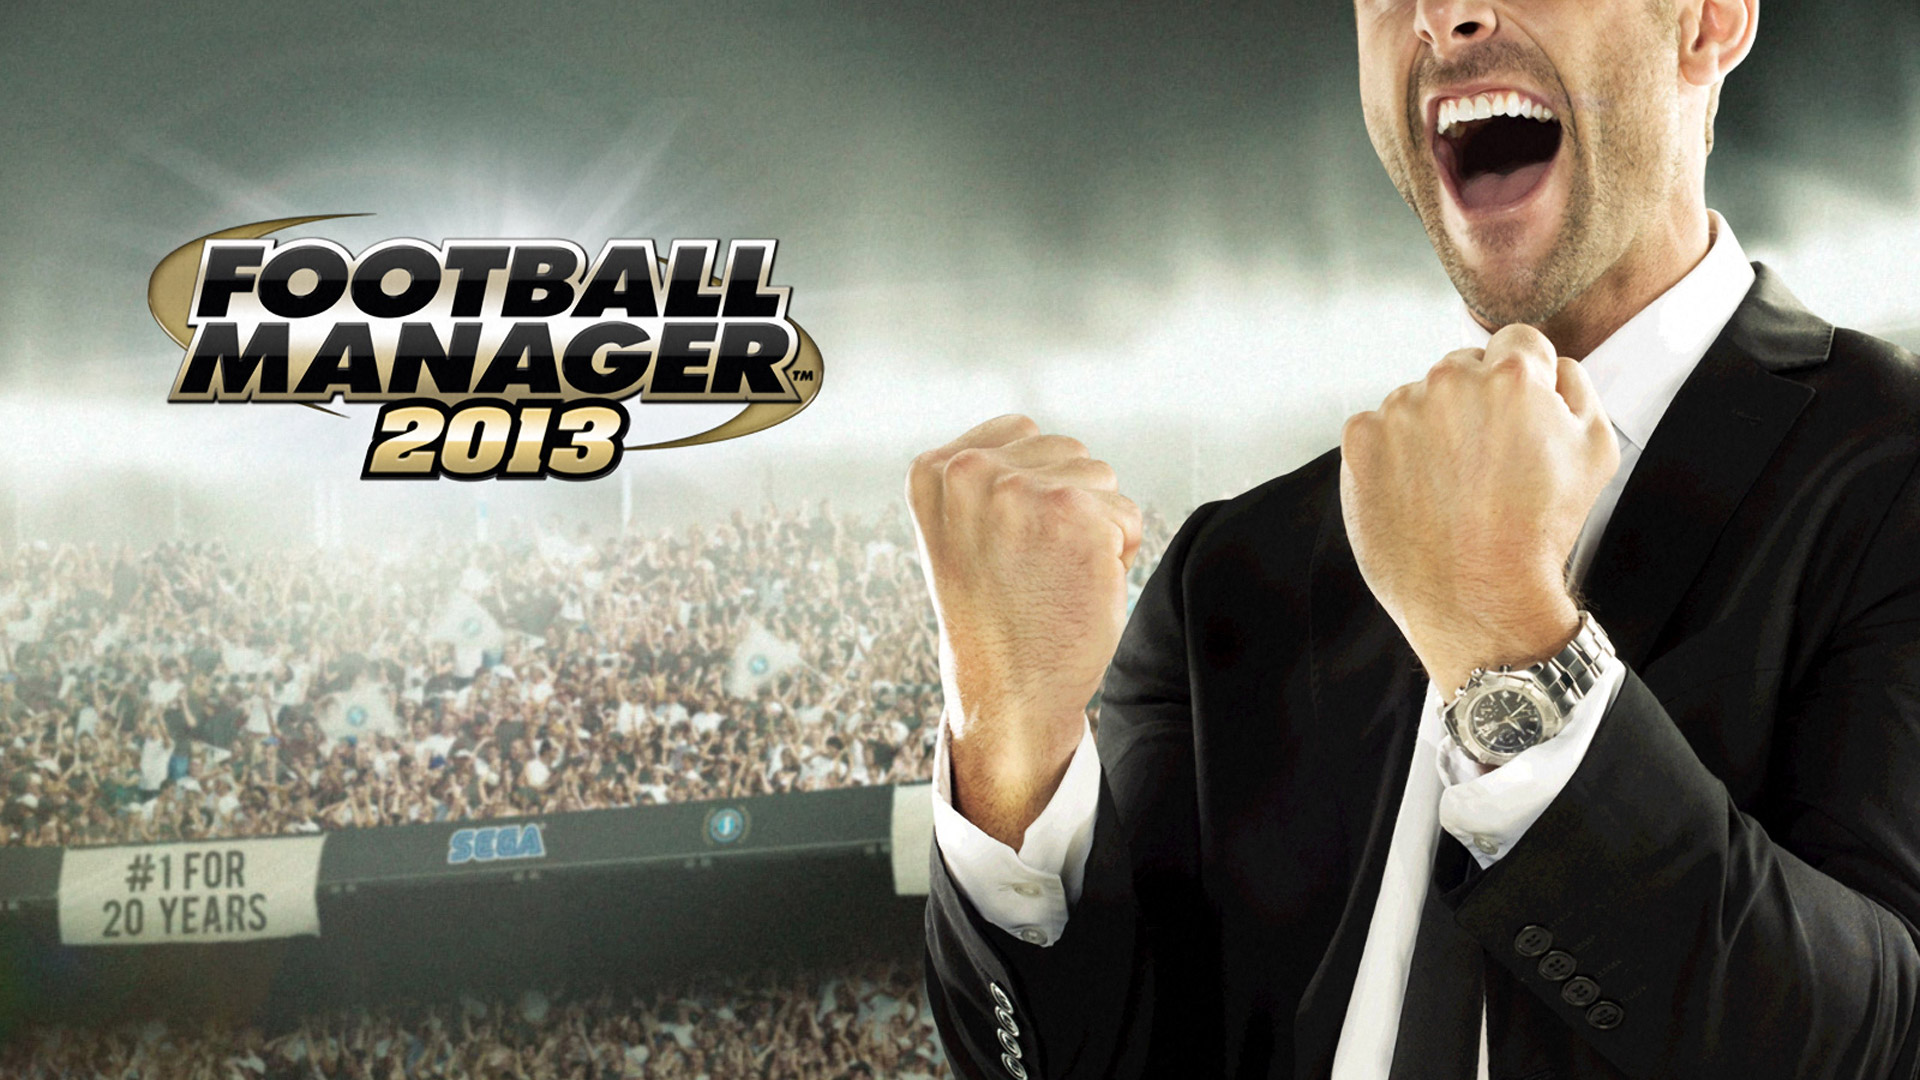 Free Football Manager 2013 Wallpaper in 1920x1080